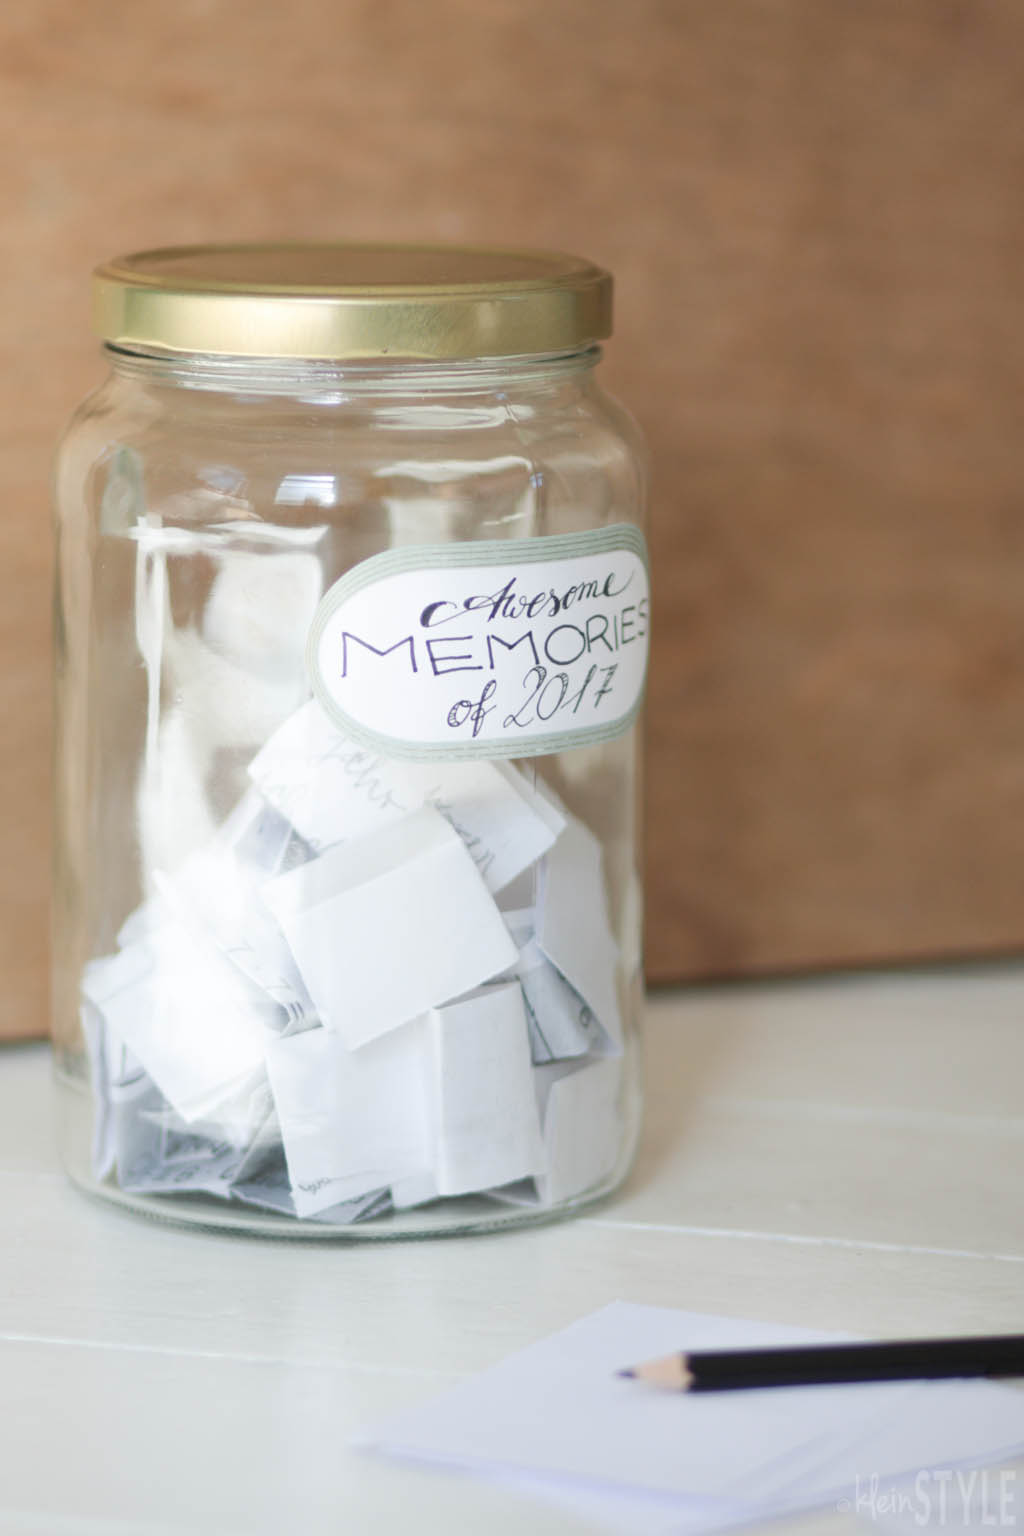 Familien Ritual Dankbarkeit Gluecksmomente Glas Awesome Memories Happy Moments jar by kleinstyle.com